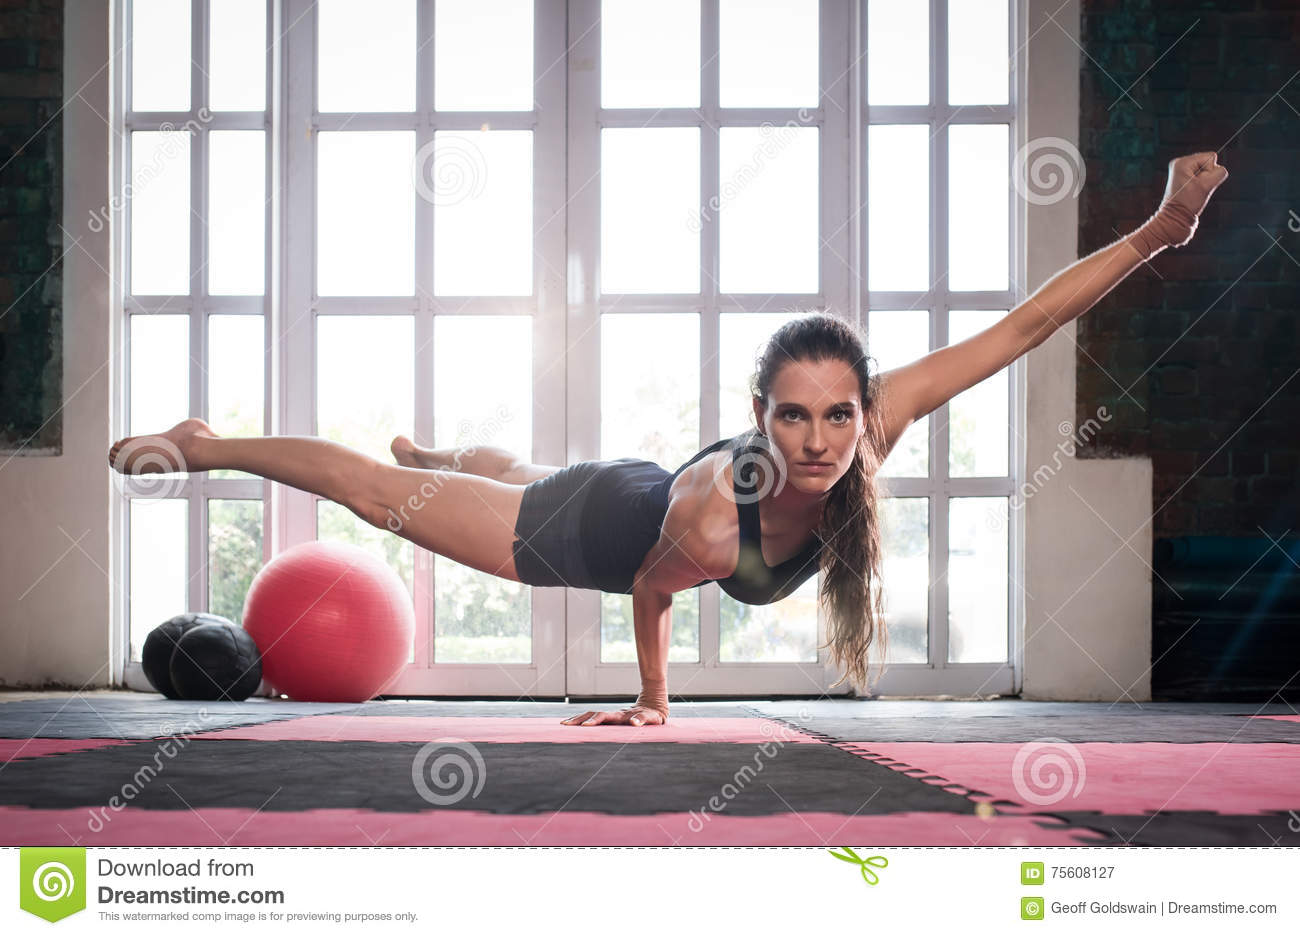 Woman balancing while doing a one hand push up showing strength